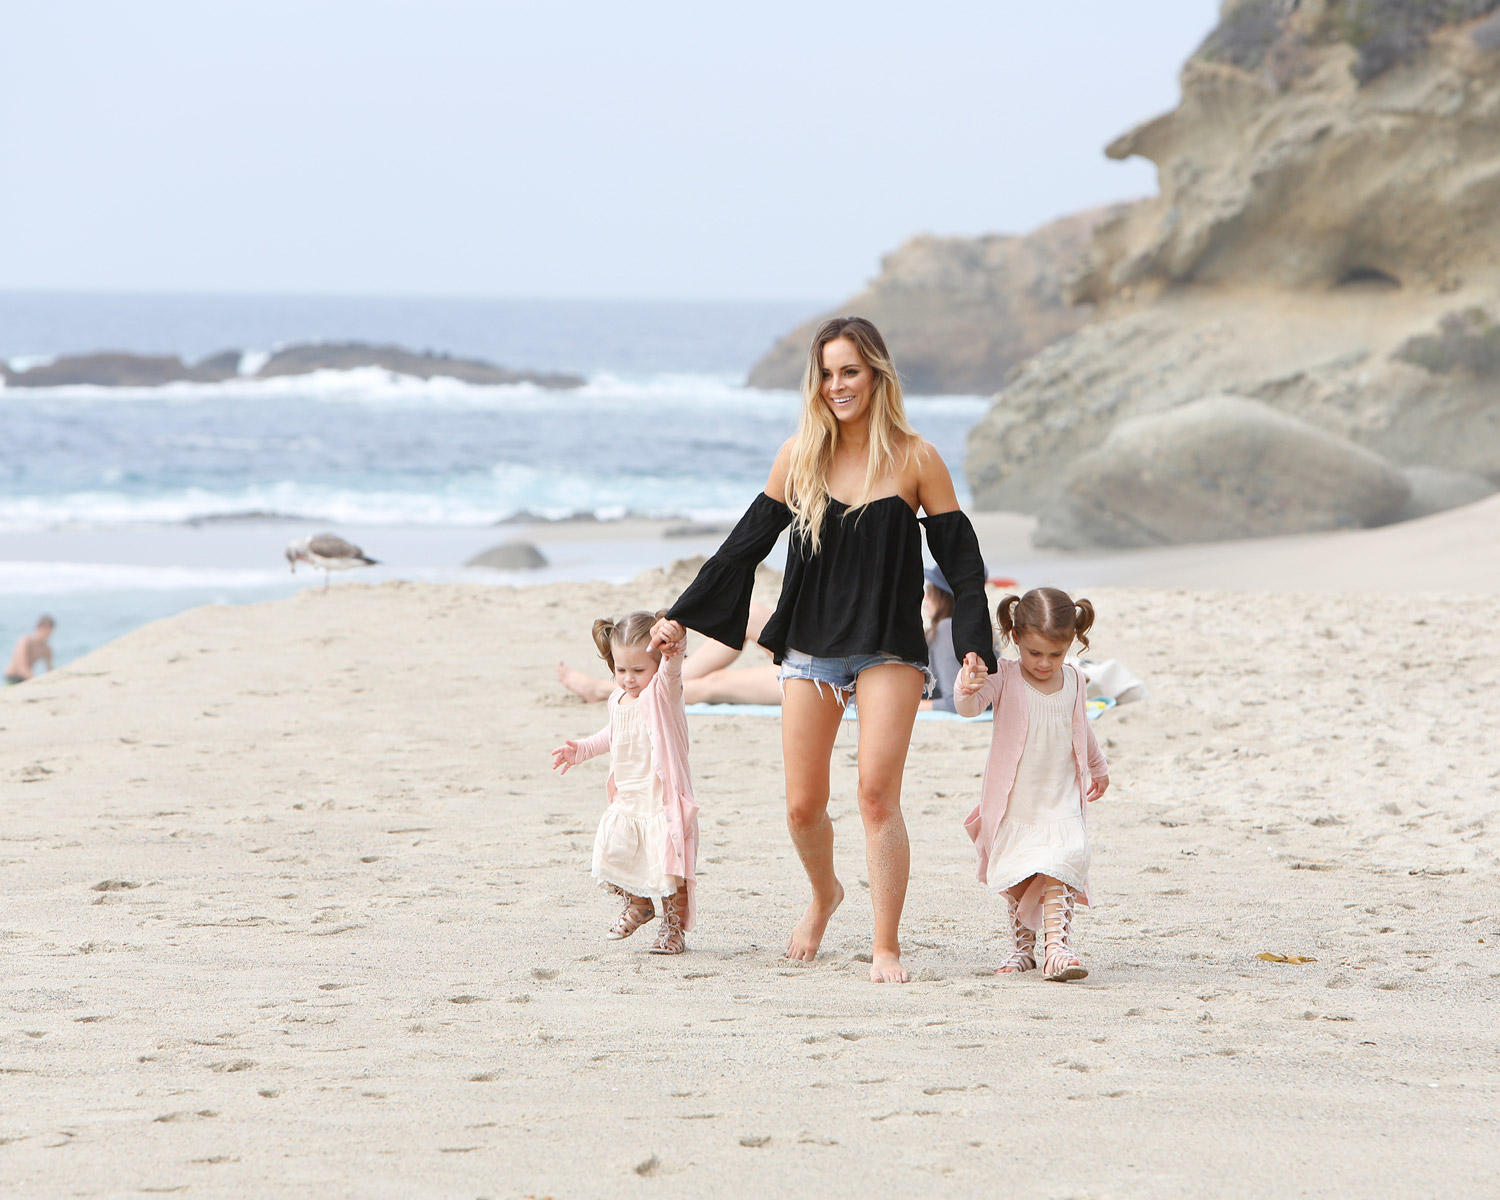 Amanda stanton introduced her daughters to bachelor ben higgins during